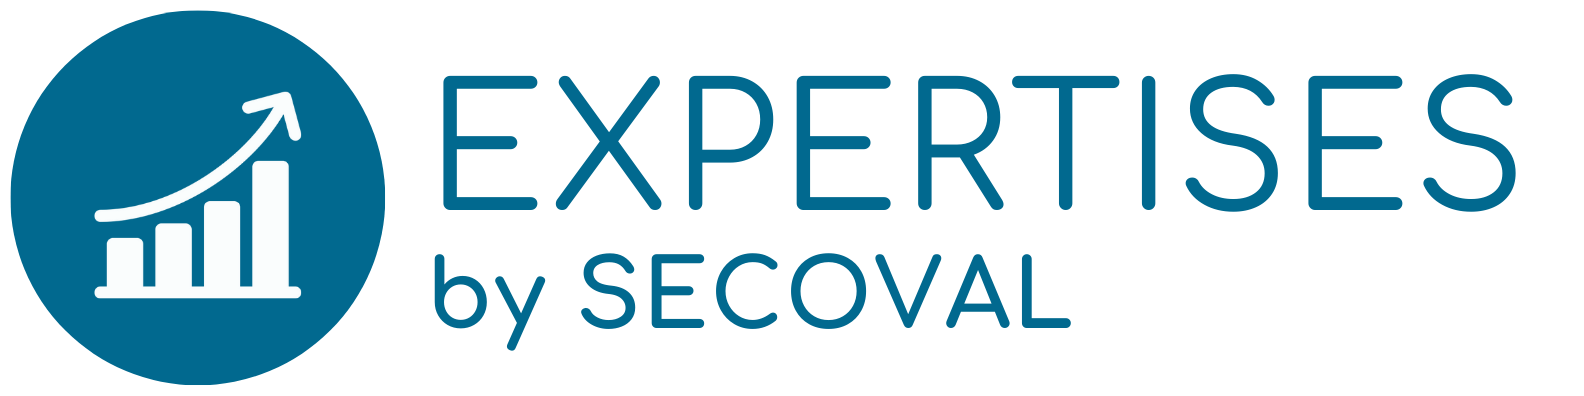 EXPERTISE BY SECOVAL